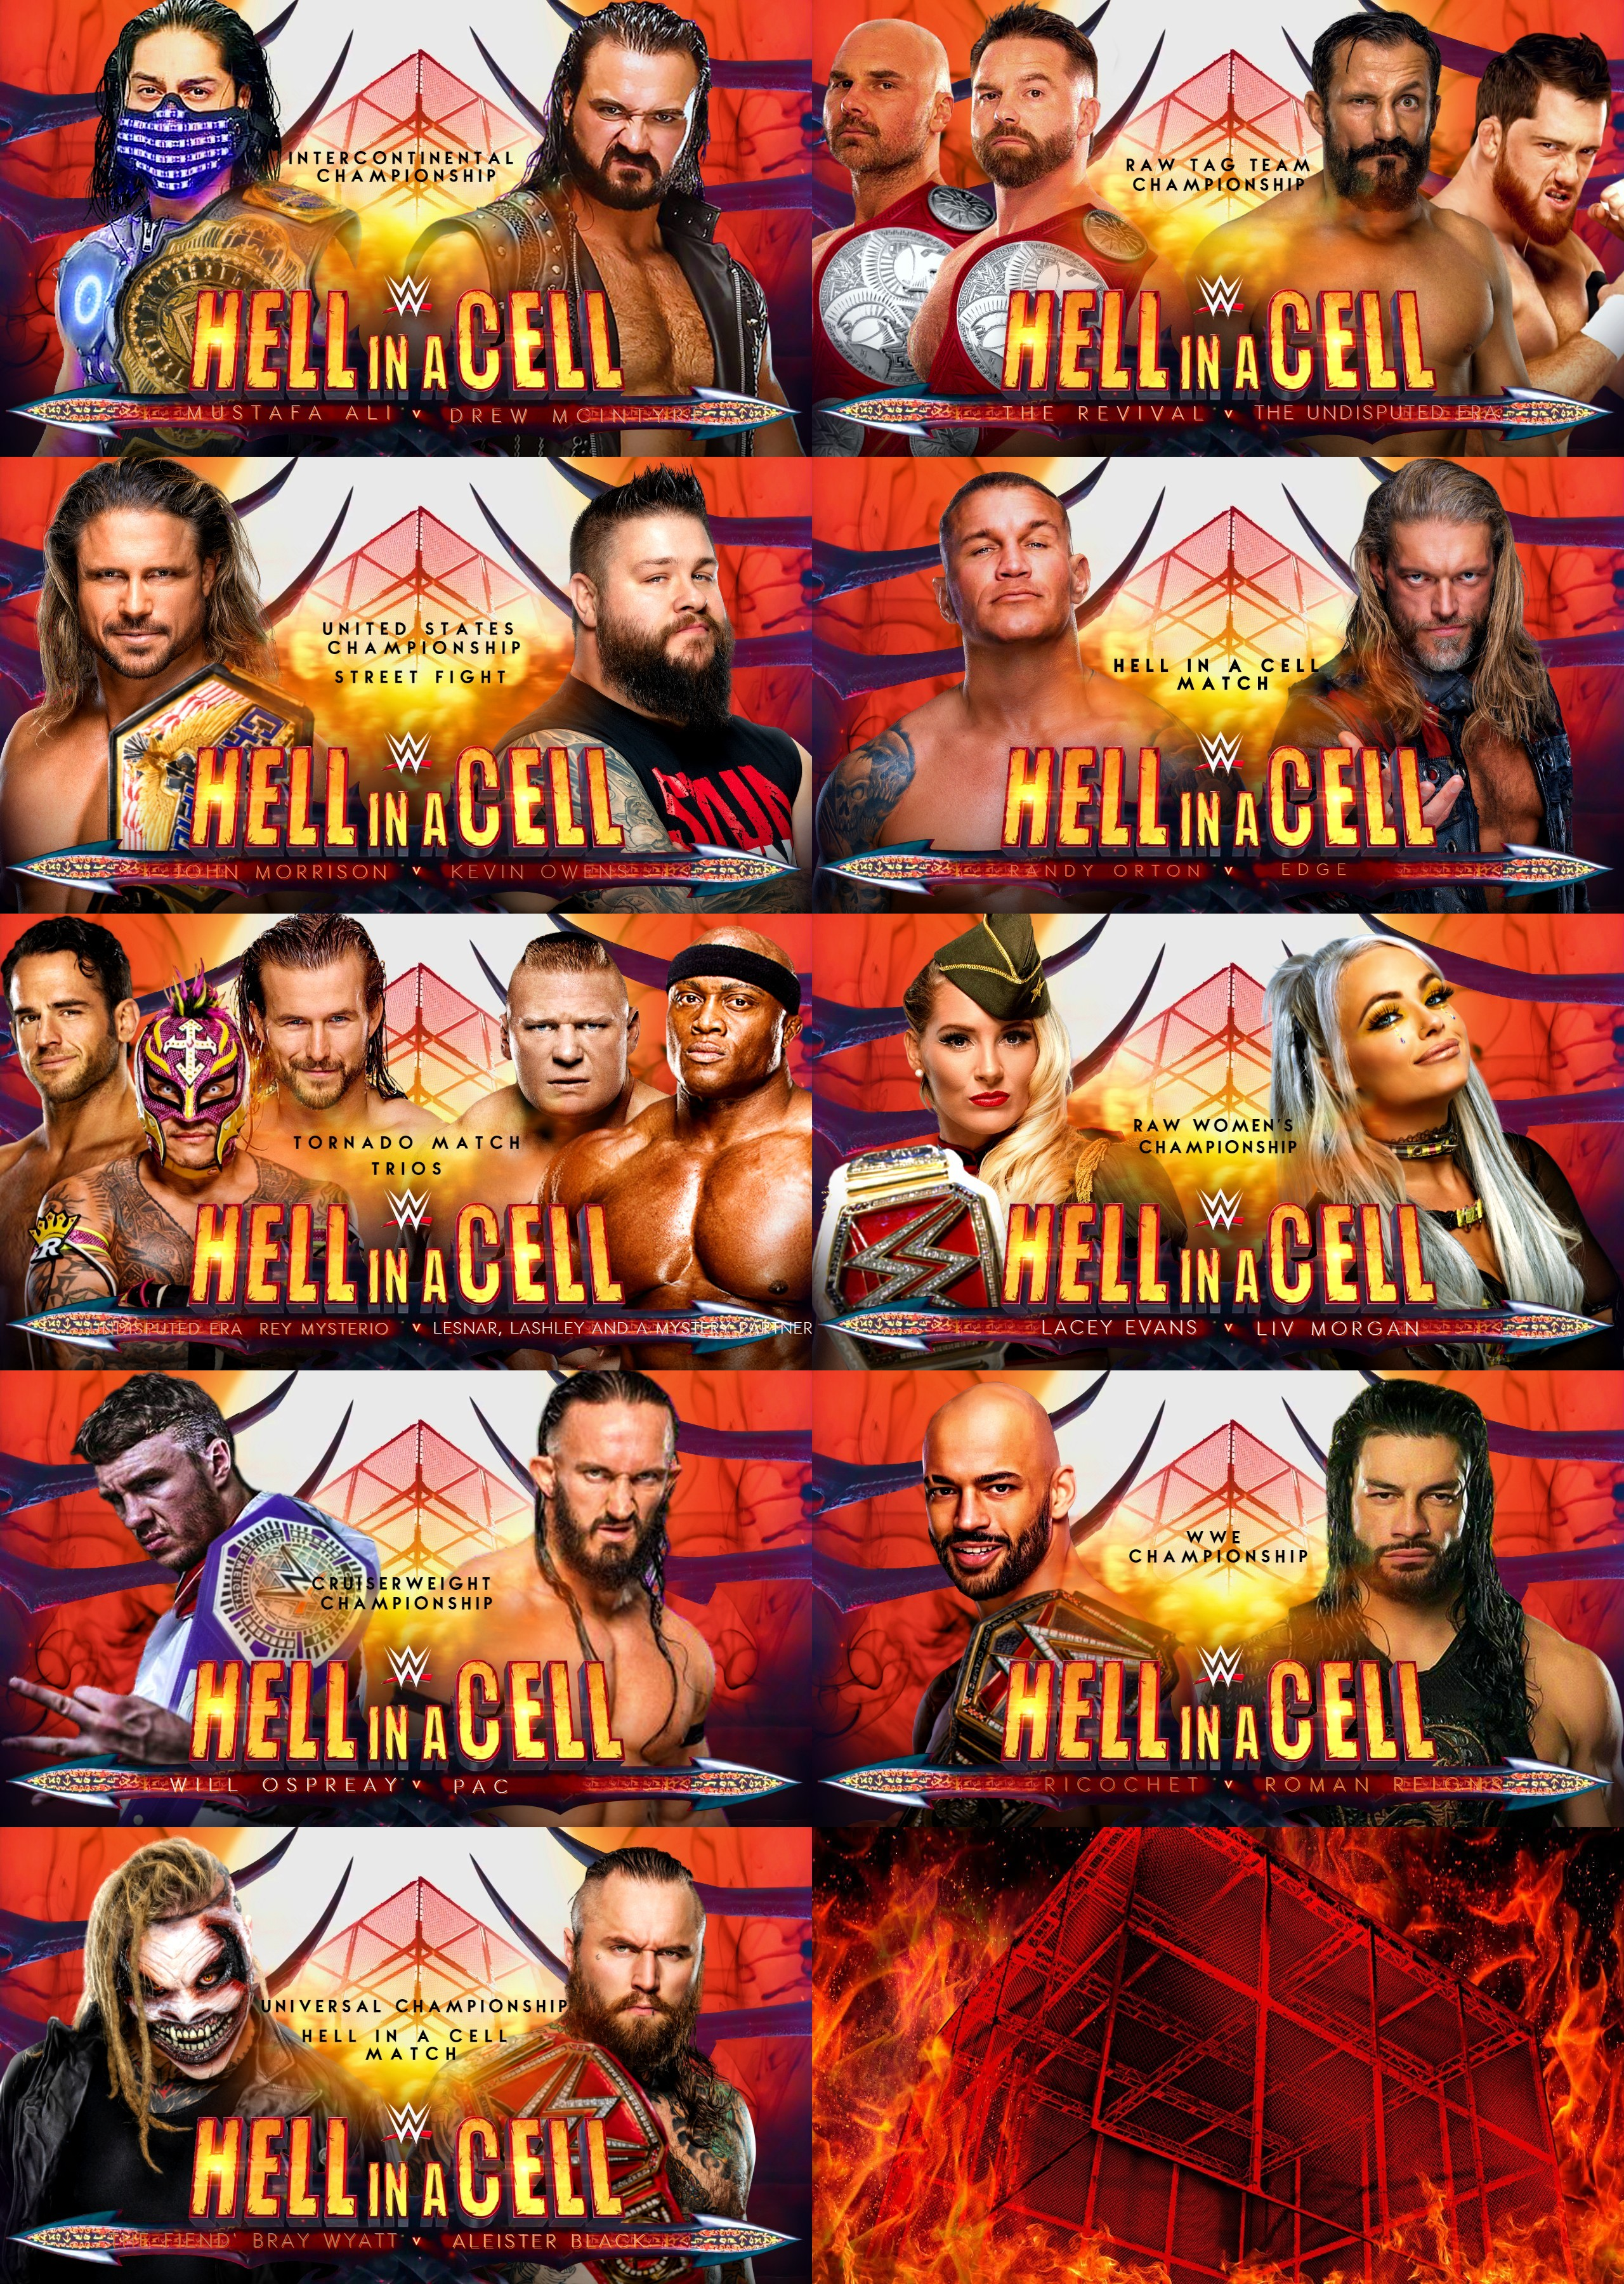 Royal Rumble Match Card Template : royal, rumble, match, template, Royal, Rumble, Match, Template, Latest, Update, Wrestlemania, Smackdown, Pwmania, Watch, Sport